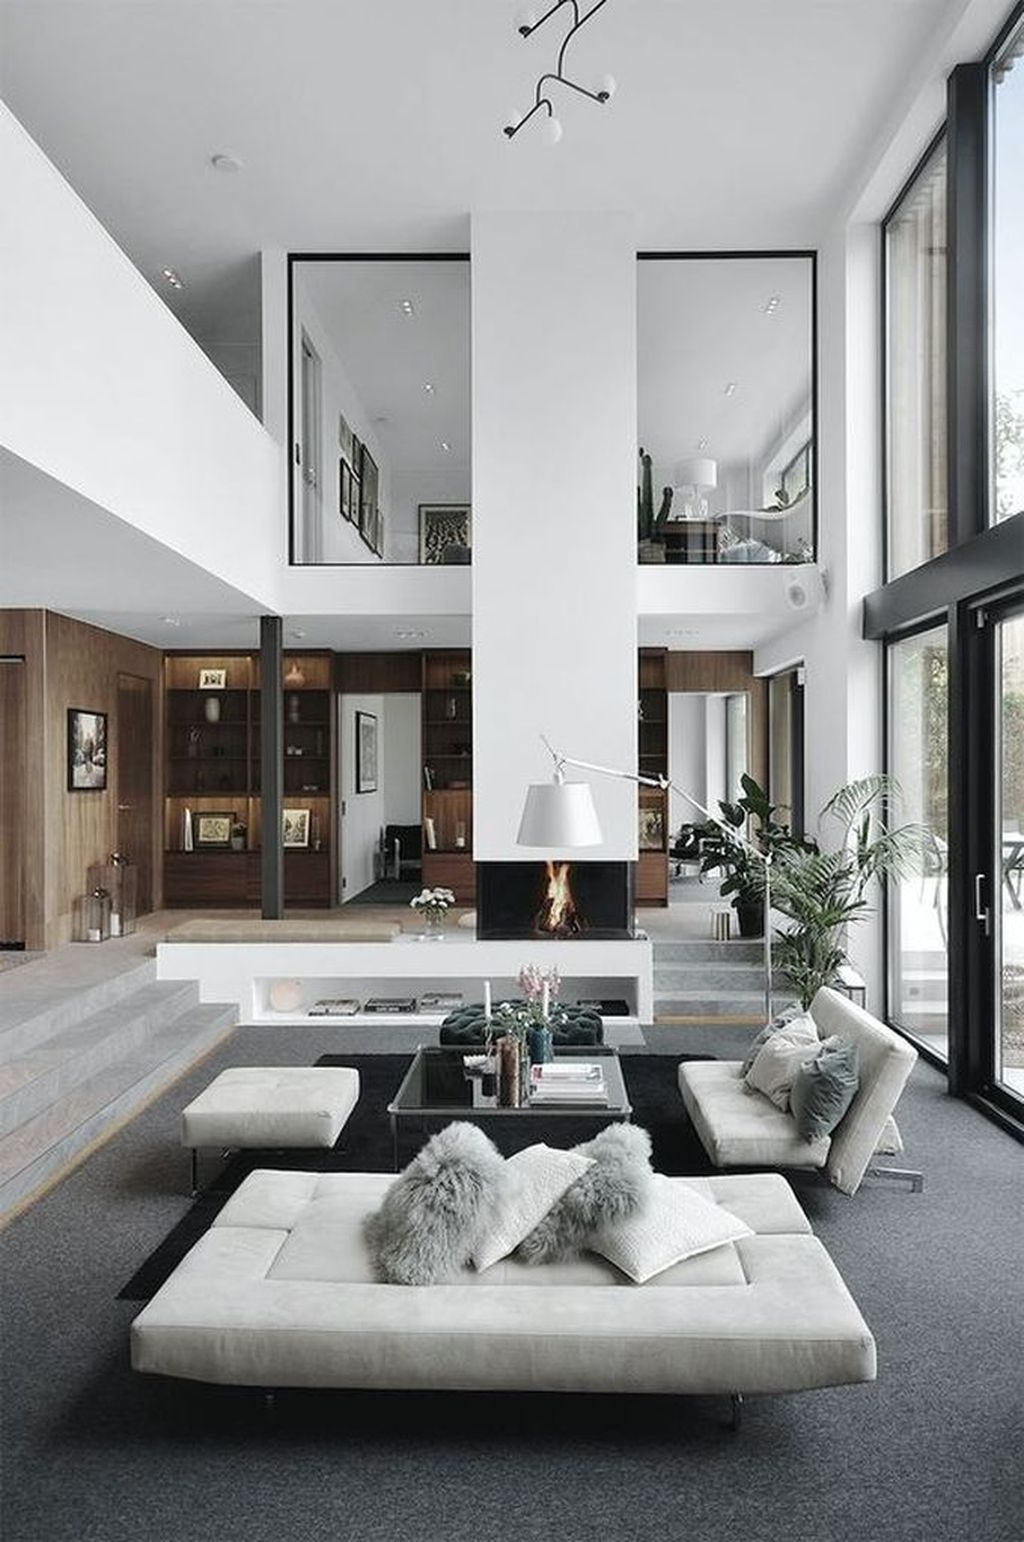 Stunning Interior Design Ideas You Should Try 30